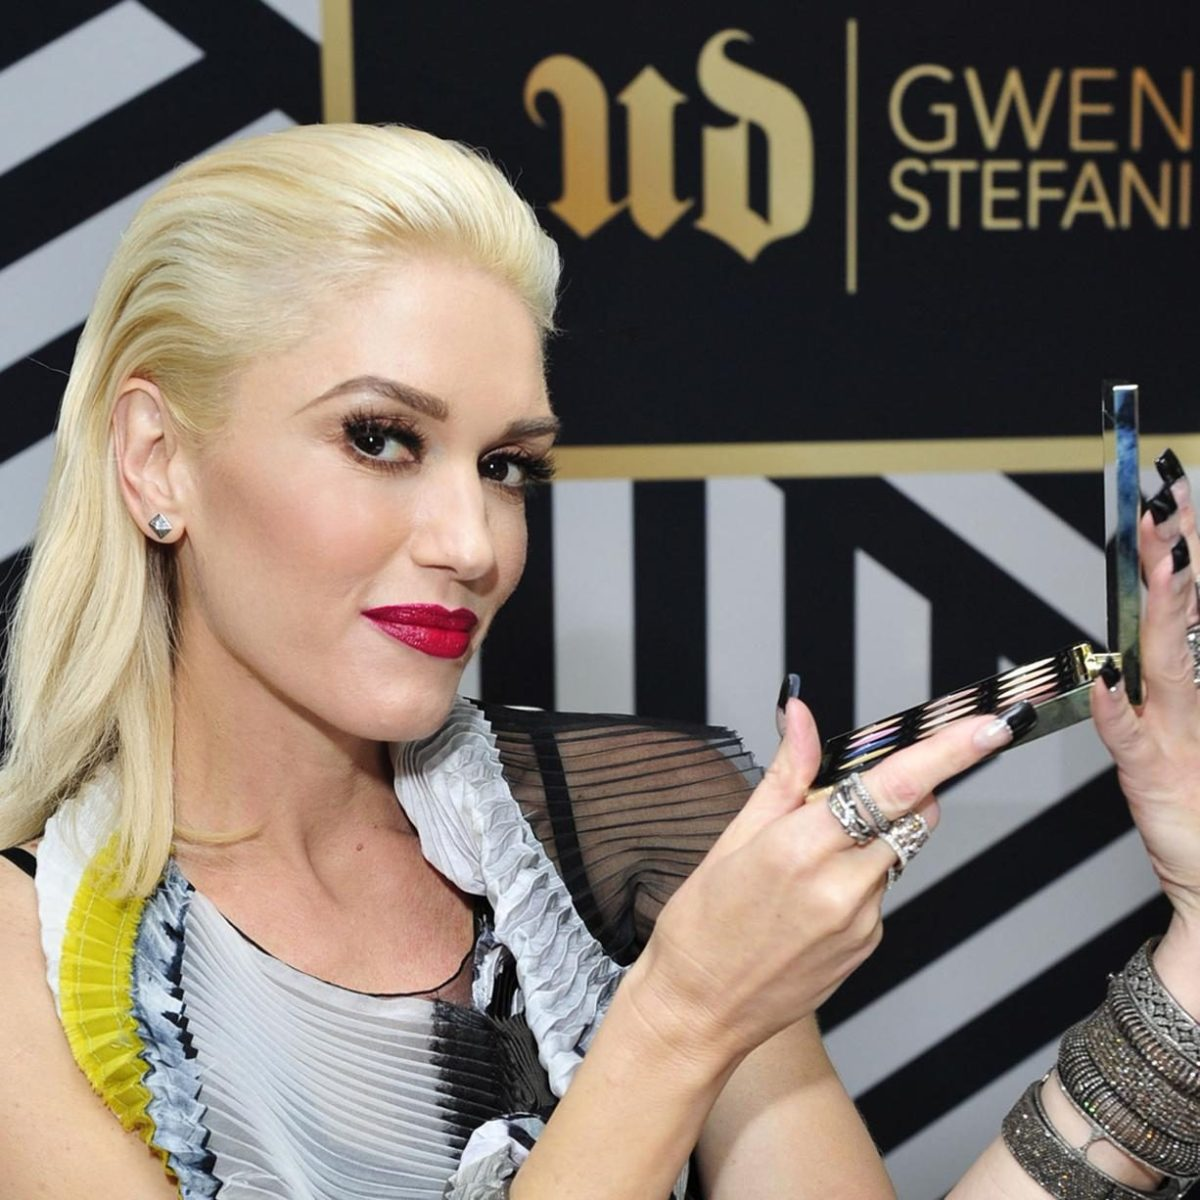 Gwen Stefani signature red lips and bold liner